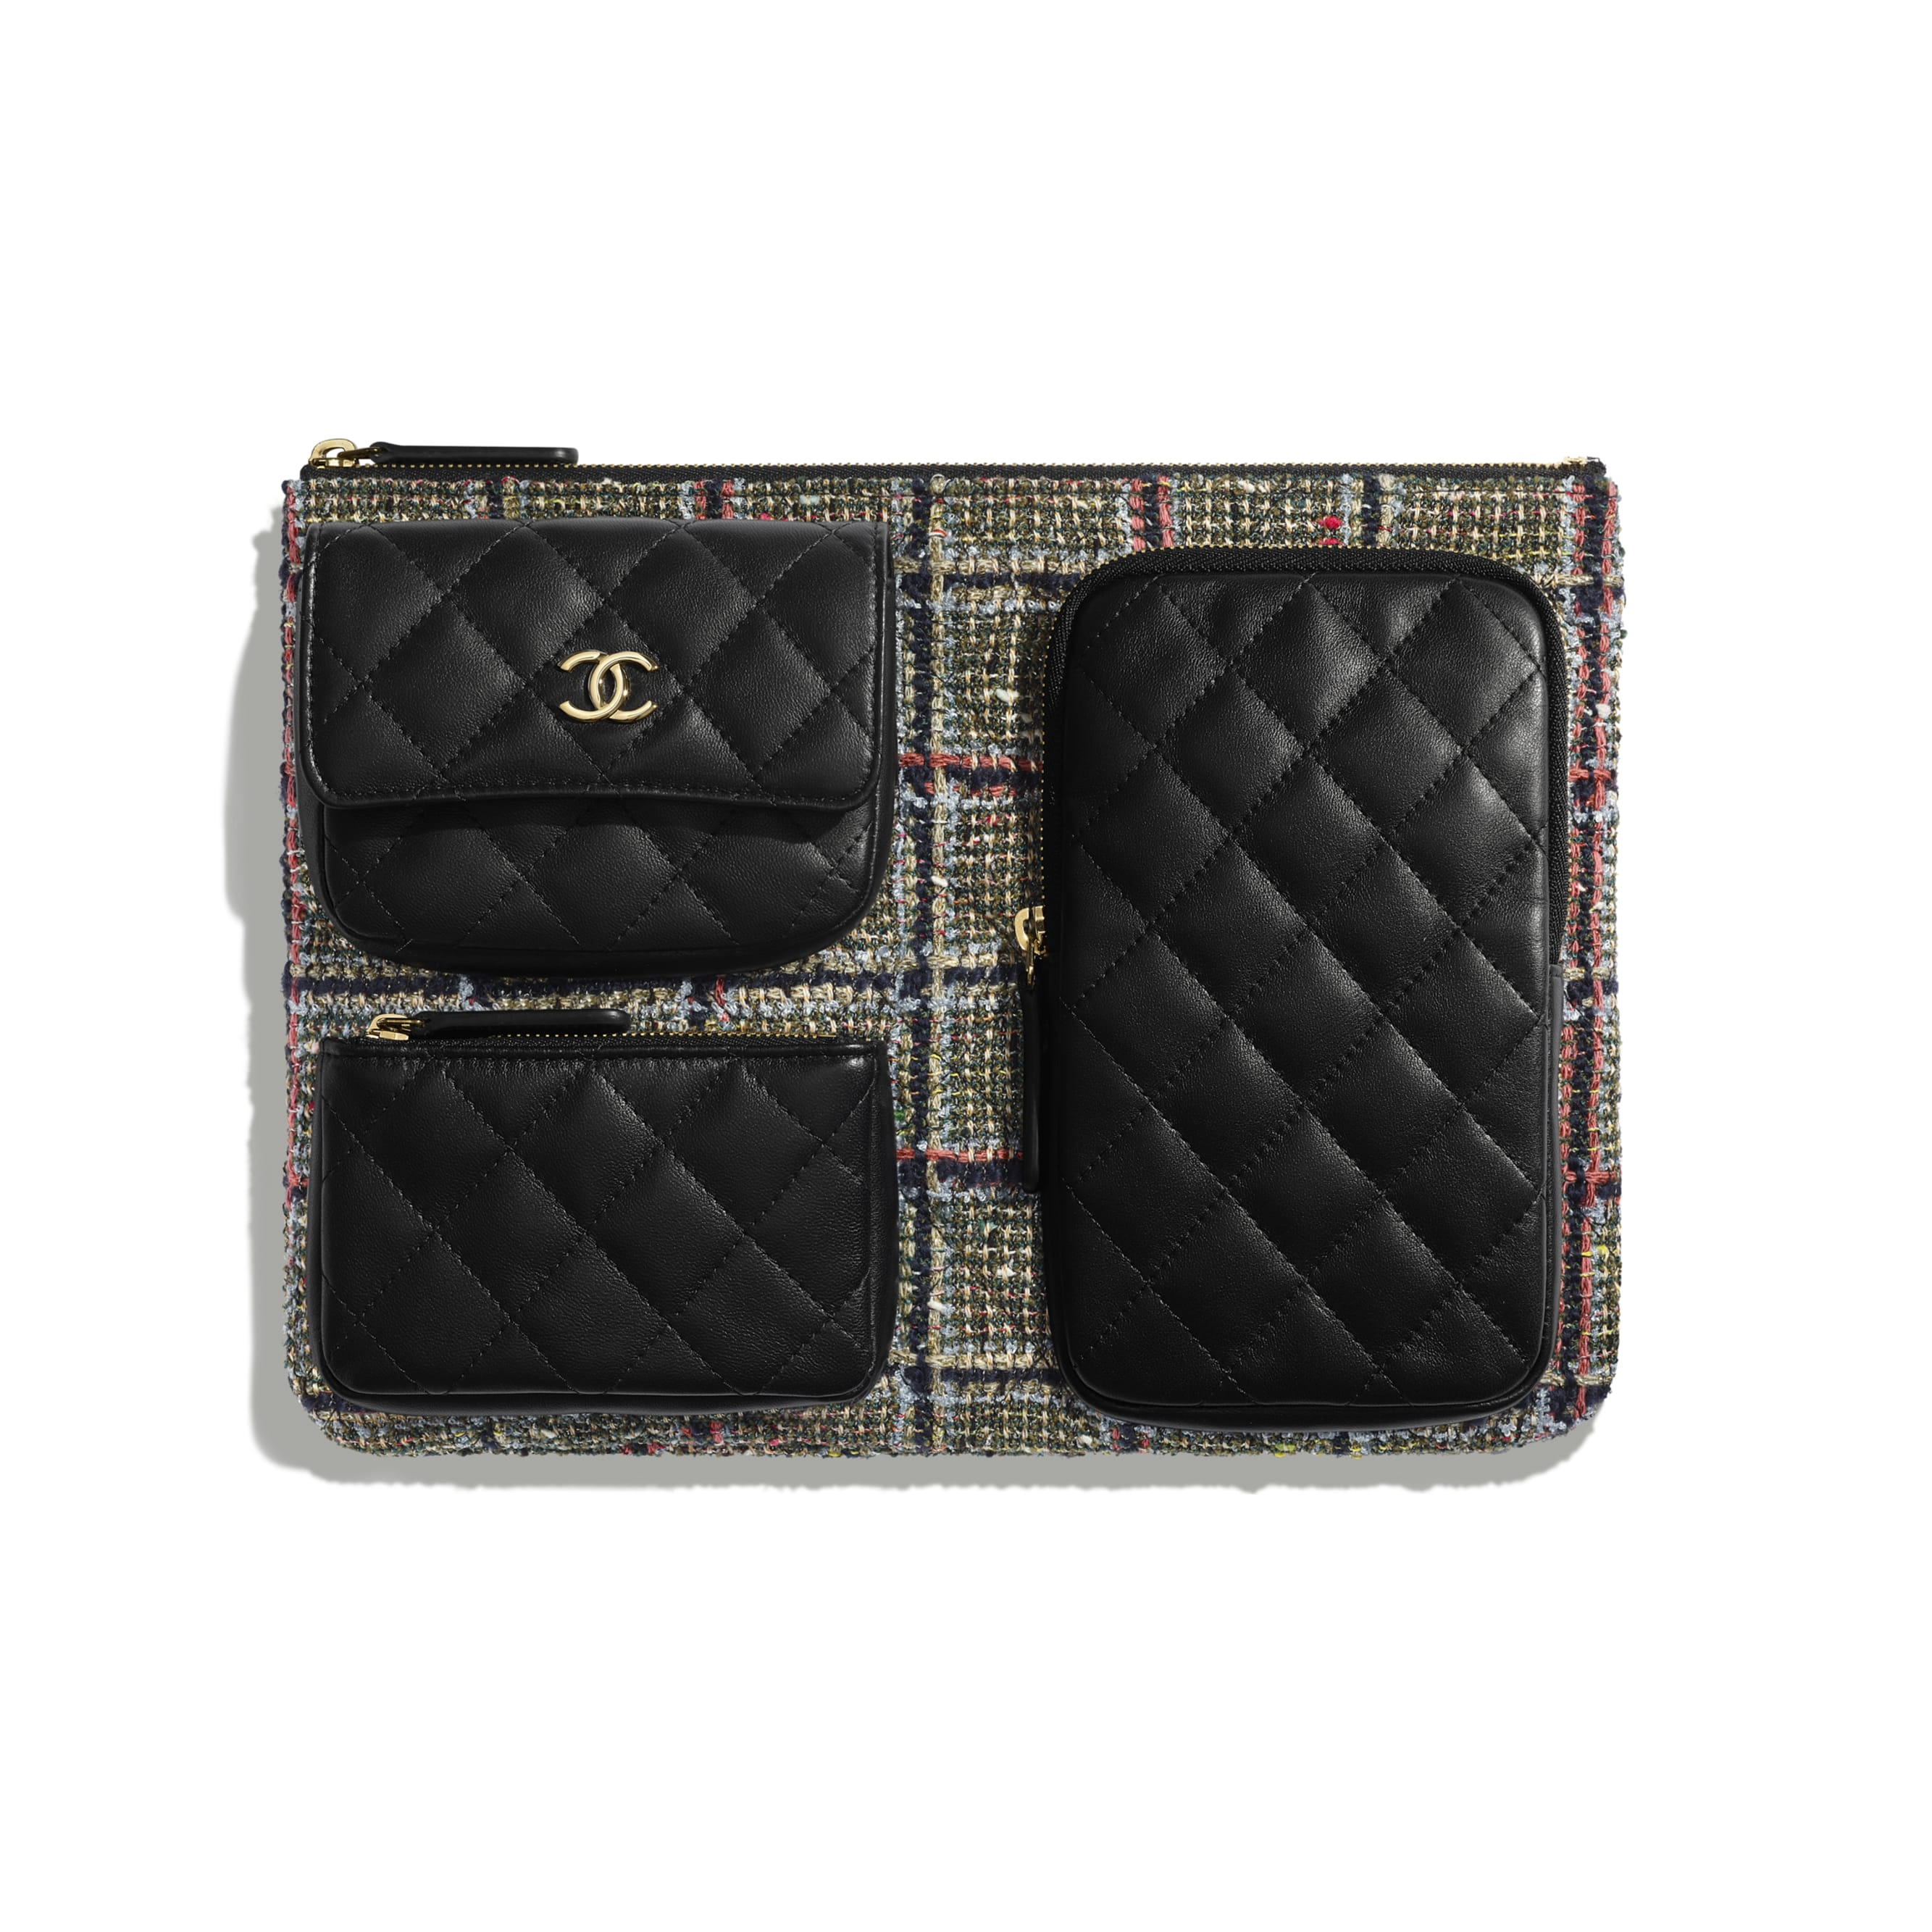 Pouch - Black, Khaki, Gray & Red - Tweed, Lambskin & Gold-Tone Metal - CHANEL - Default view - see standard sized version